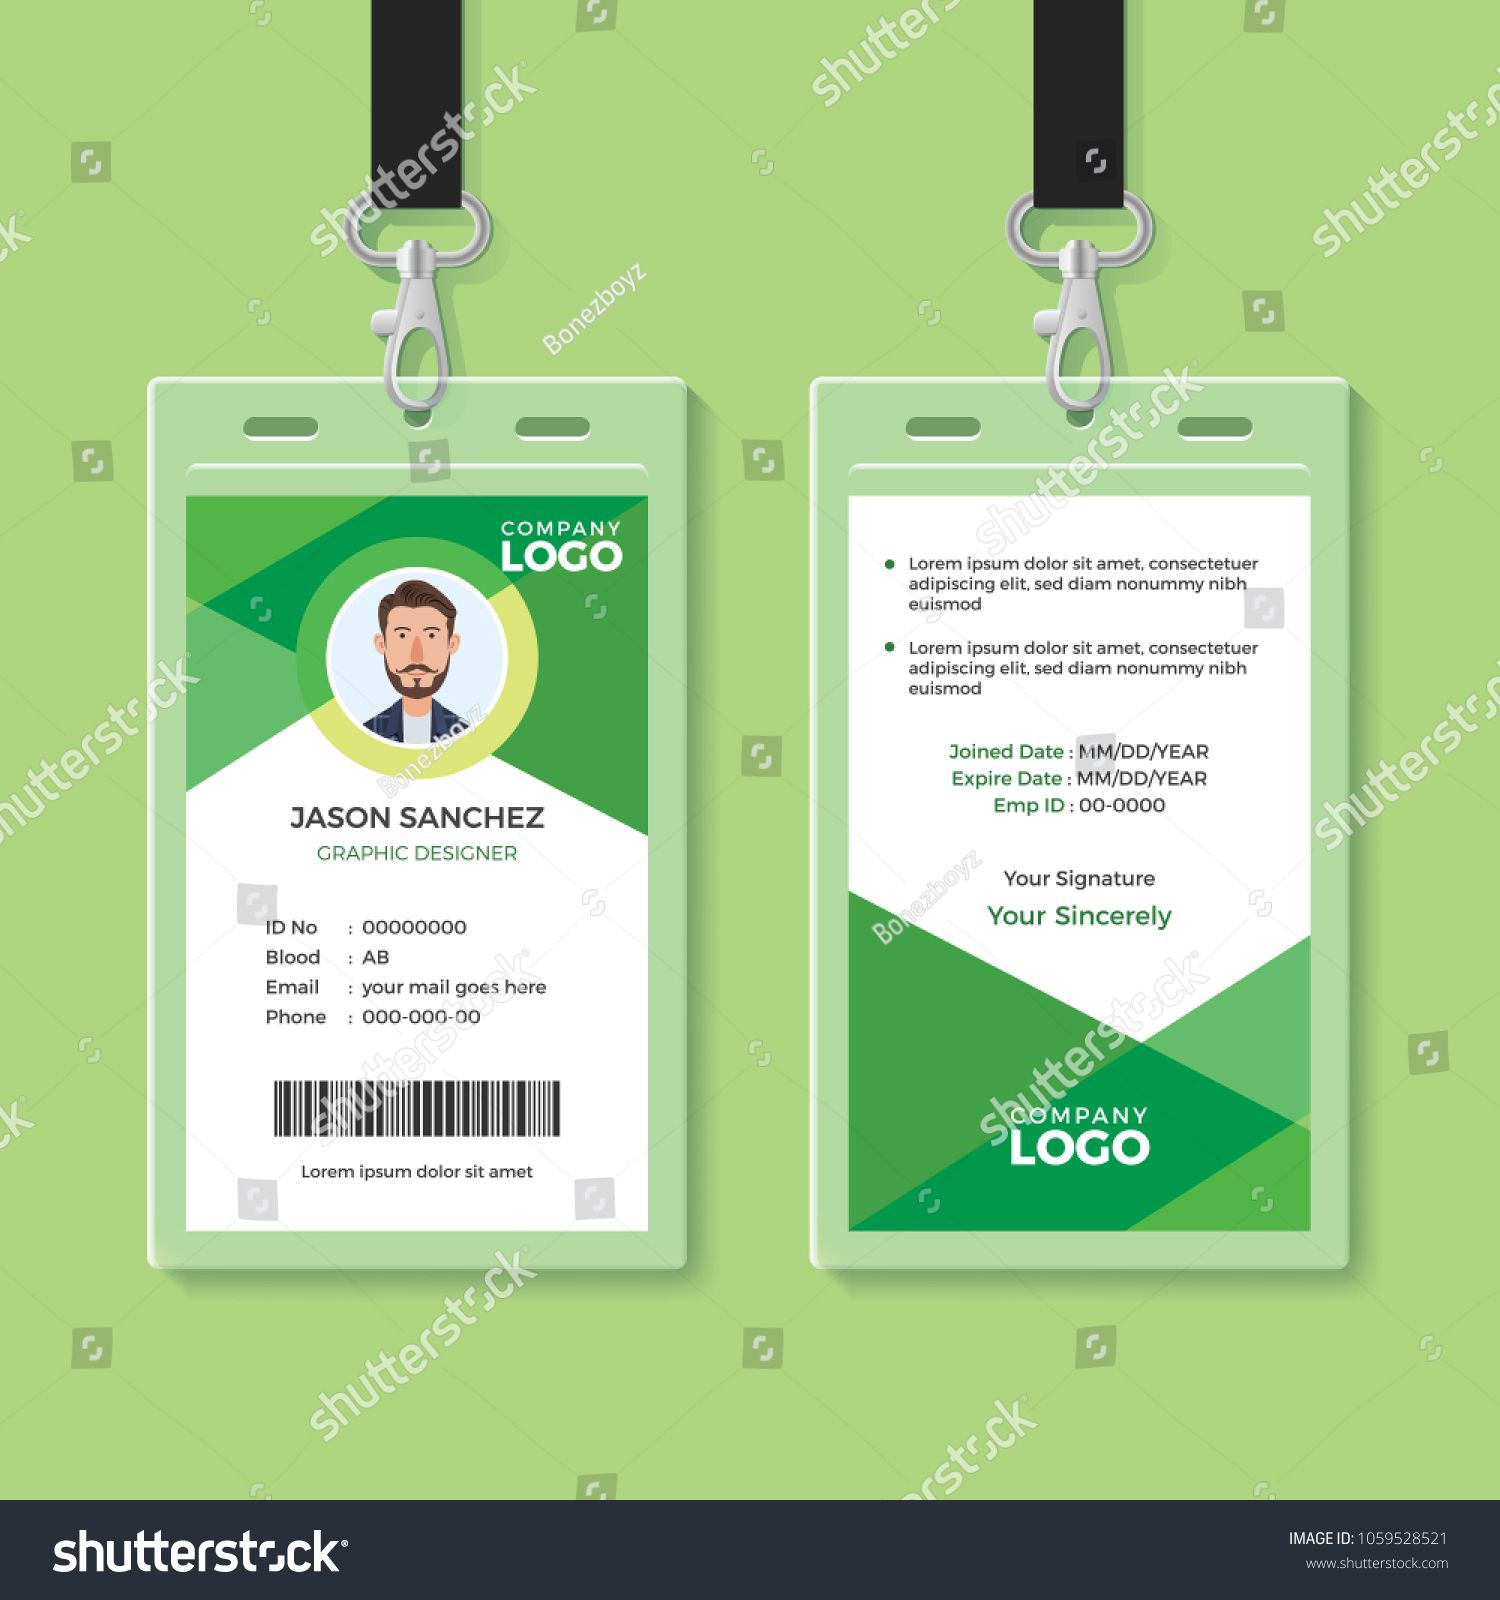 Simple And Clean Green Id Card Design Template Green Clean Simple